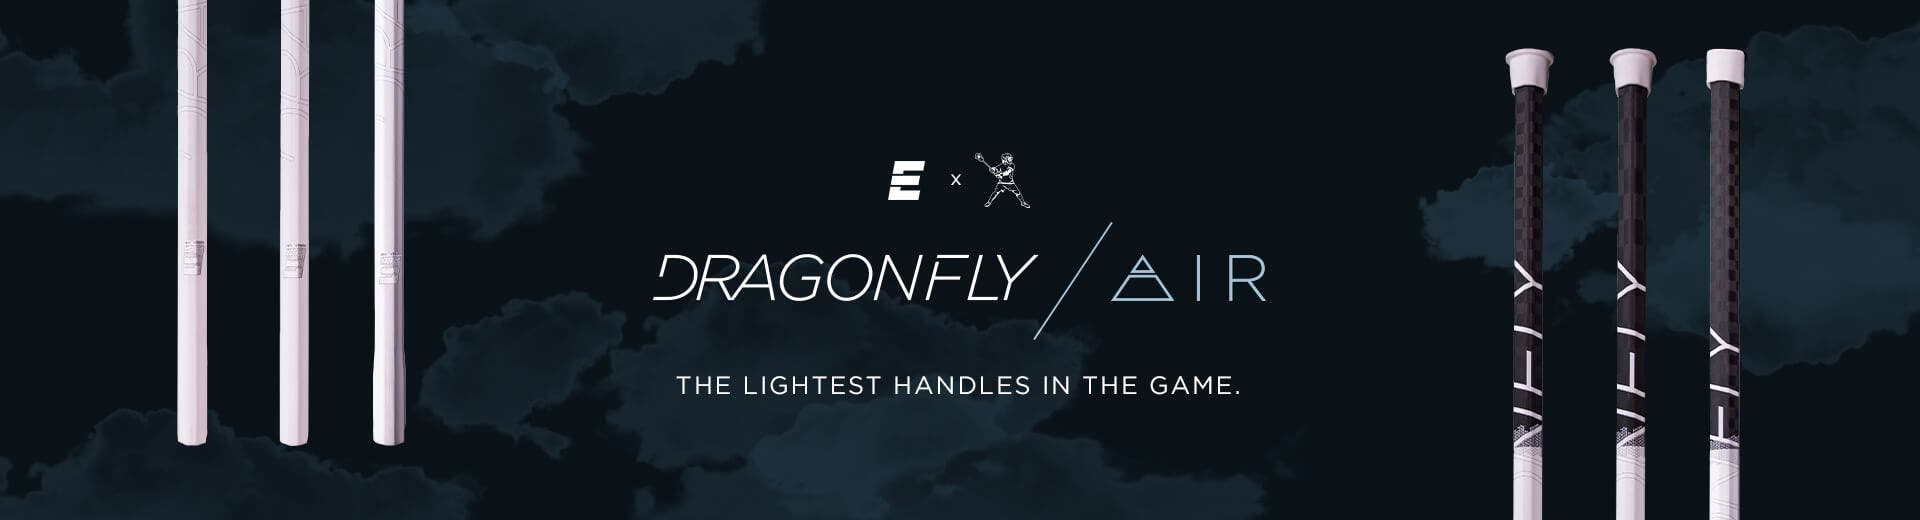 EPOCH Dragonfly Air Shafts DESKTOP